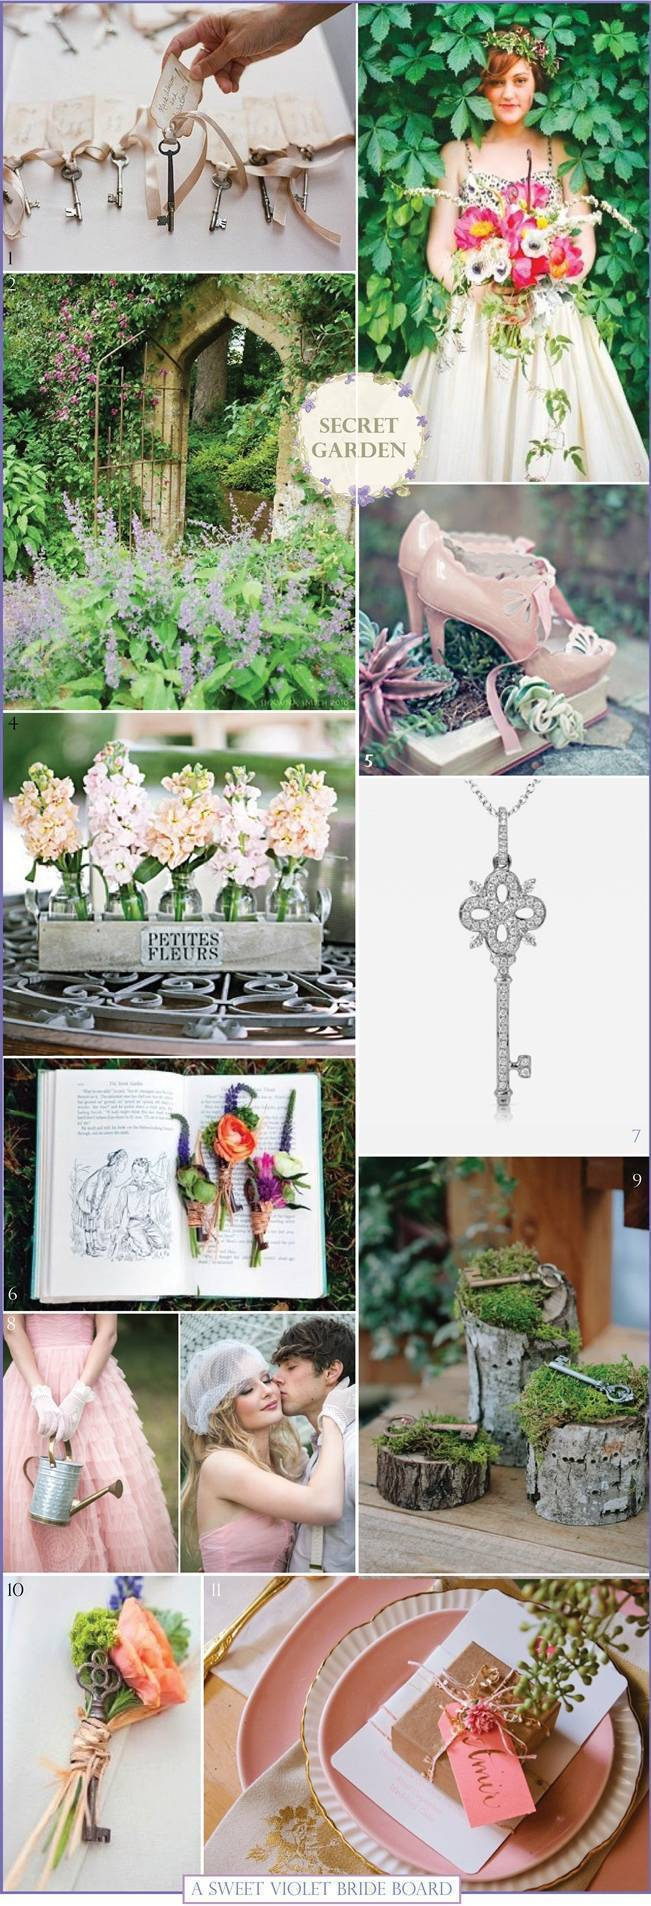 Wedding Inspiration Board #9: Secret Garden